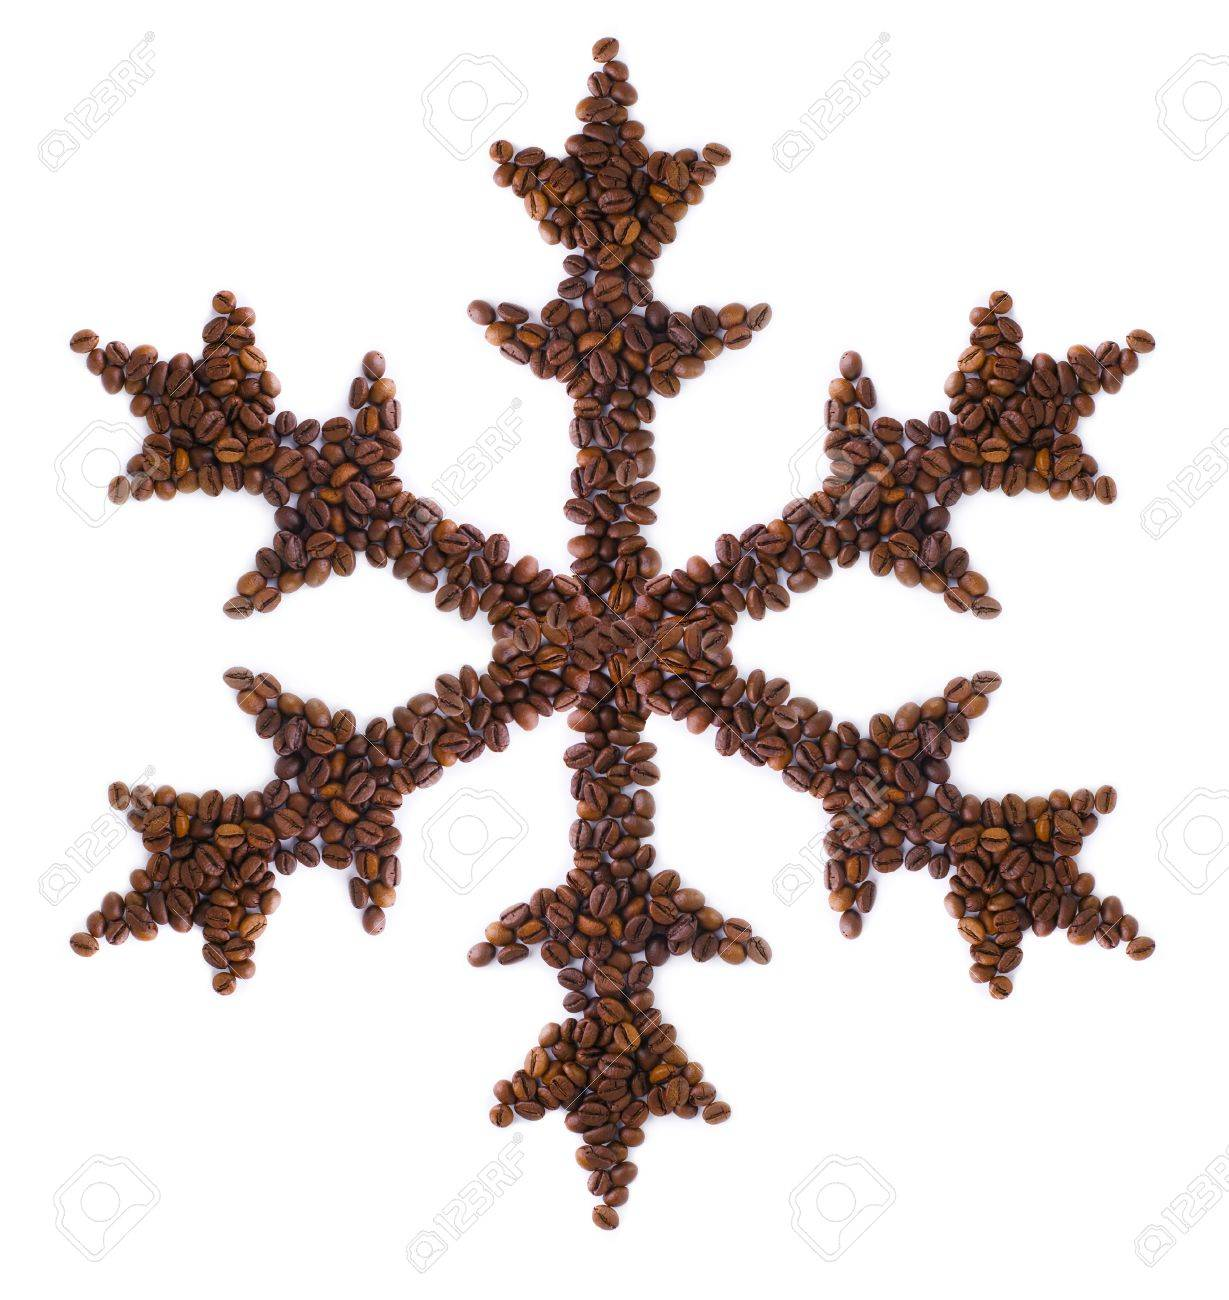 Snowflake Made Of Coffee Beans Stock Photo Picture And Royalty Free